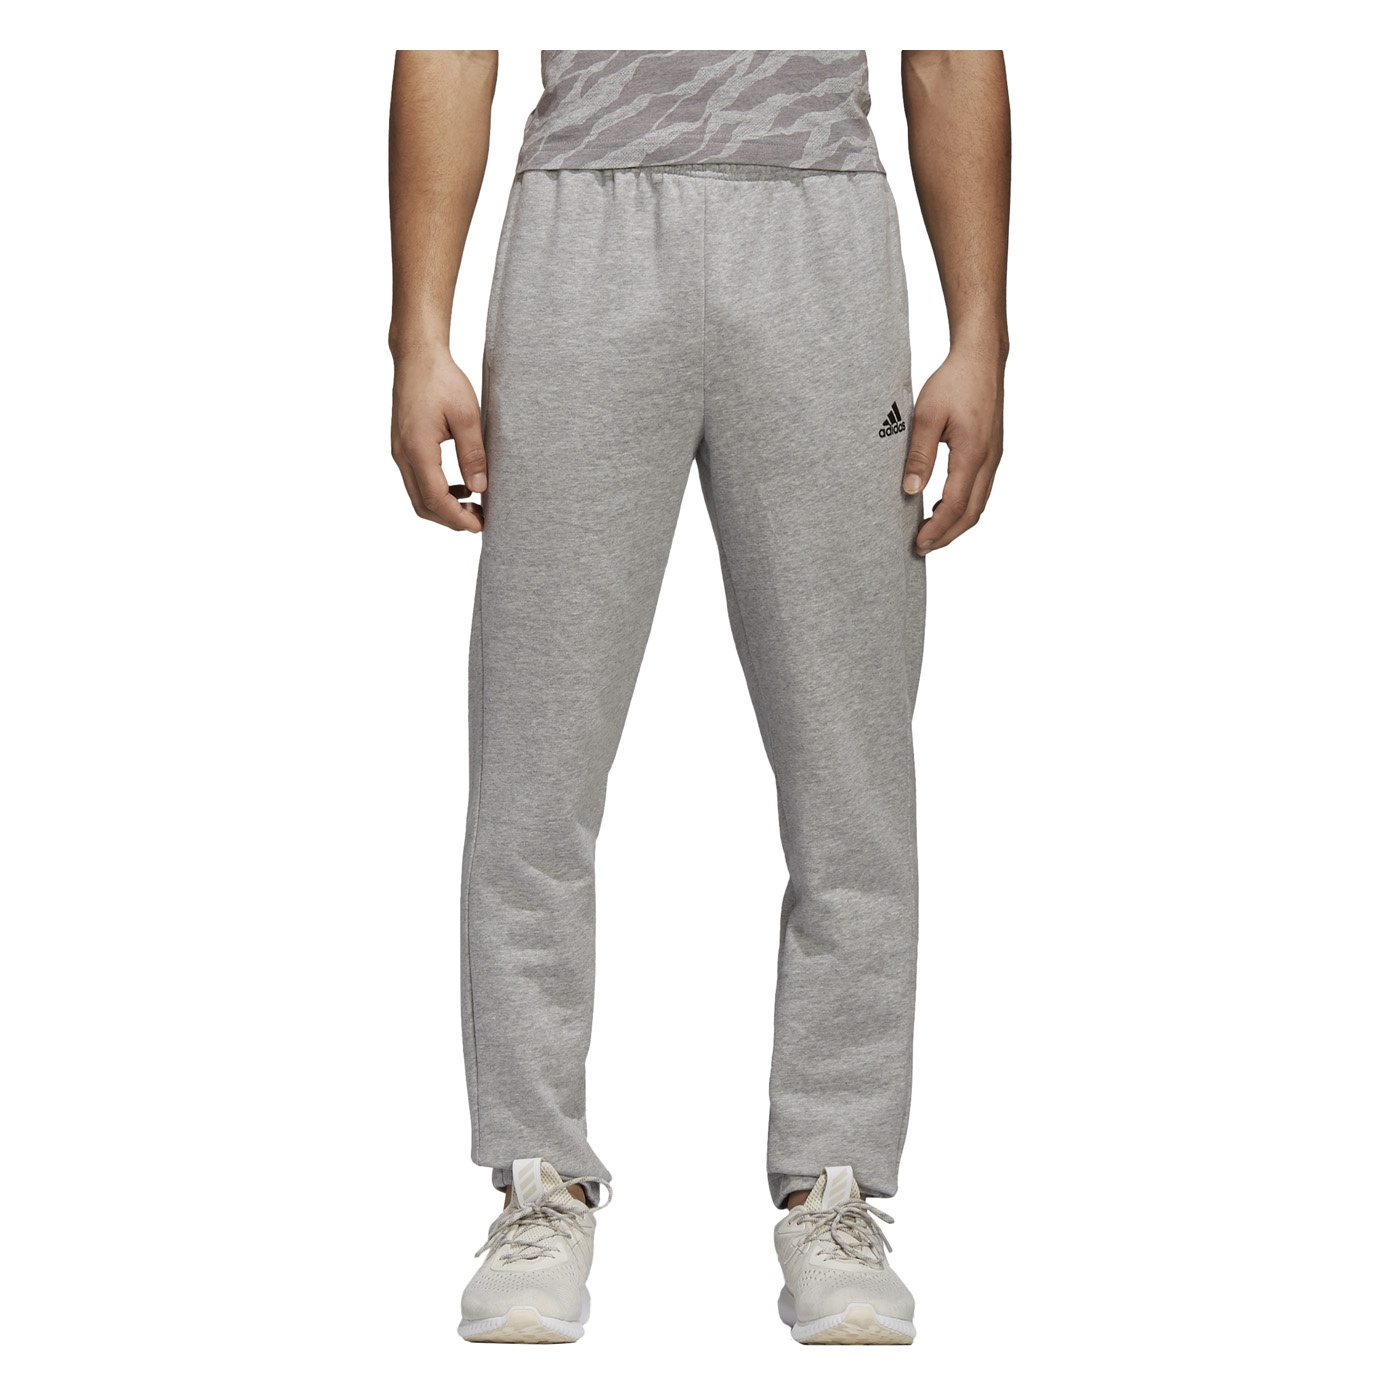 Tepláky Adidas Commercial Tapered Linear Pant - DM3134  fac92a4d2a